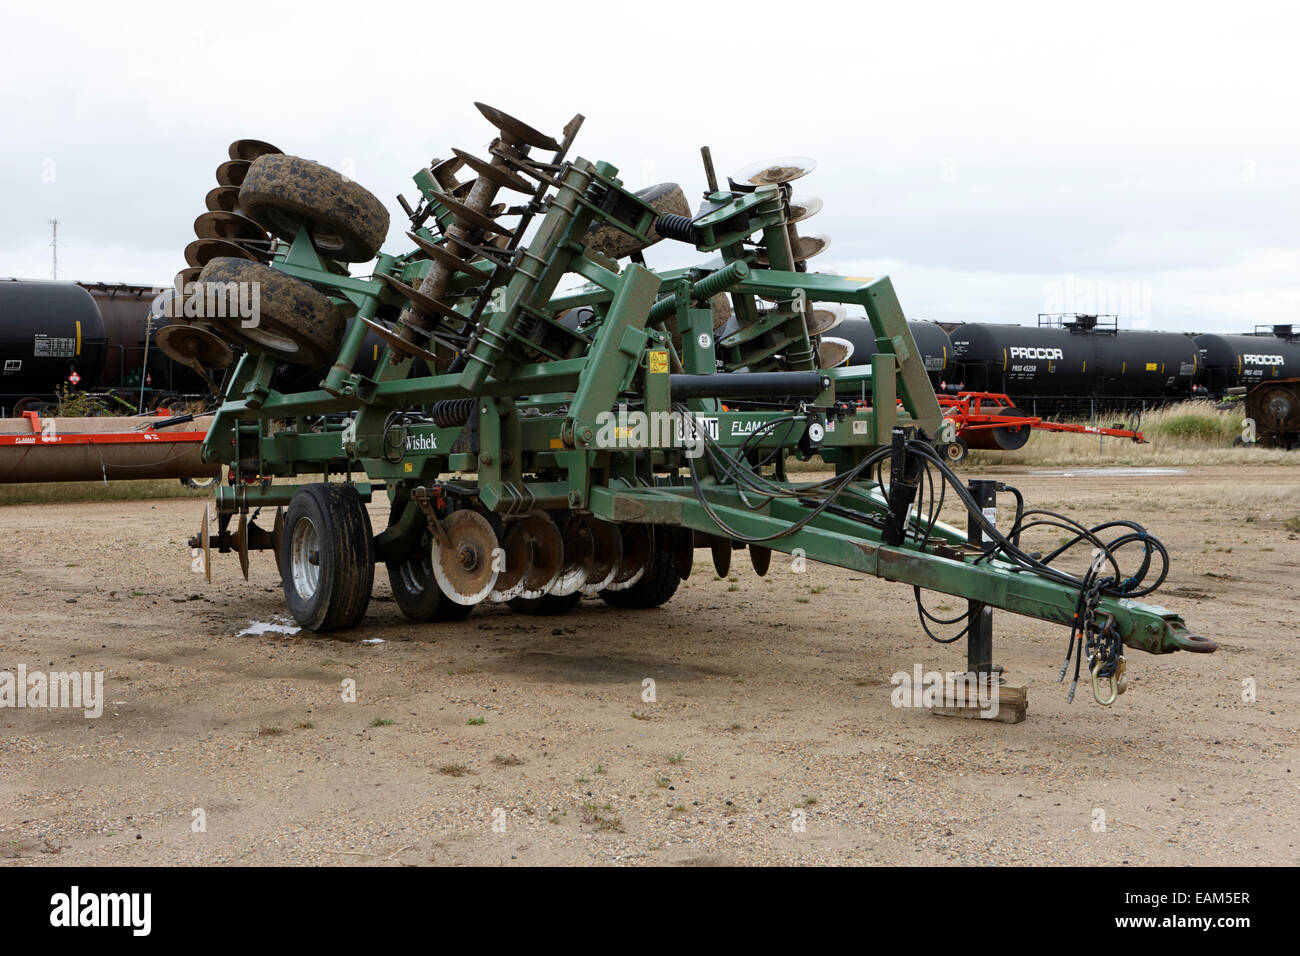 flaman wishek heavy disc plough agricultural machinery Saskatchewan Canada - Stock Image